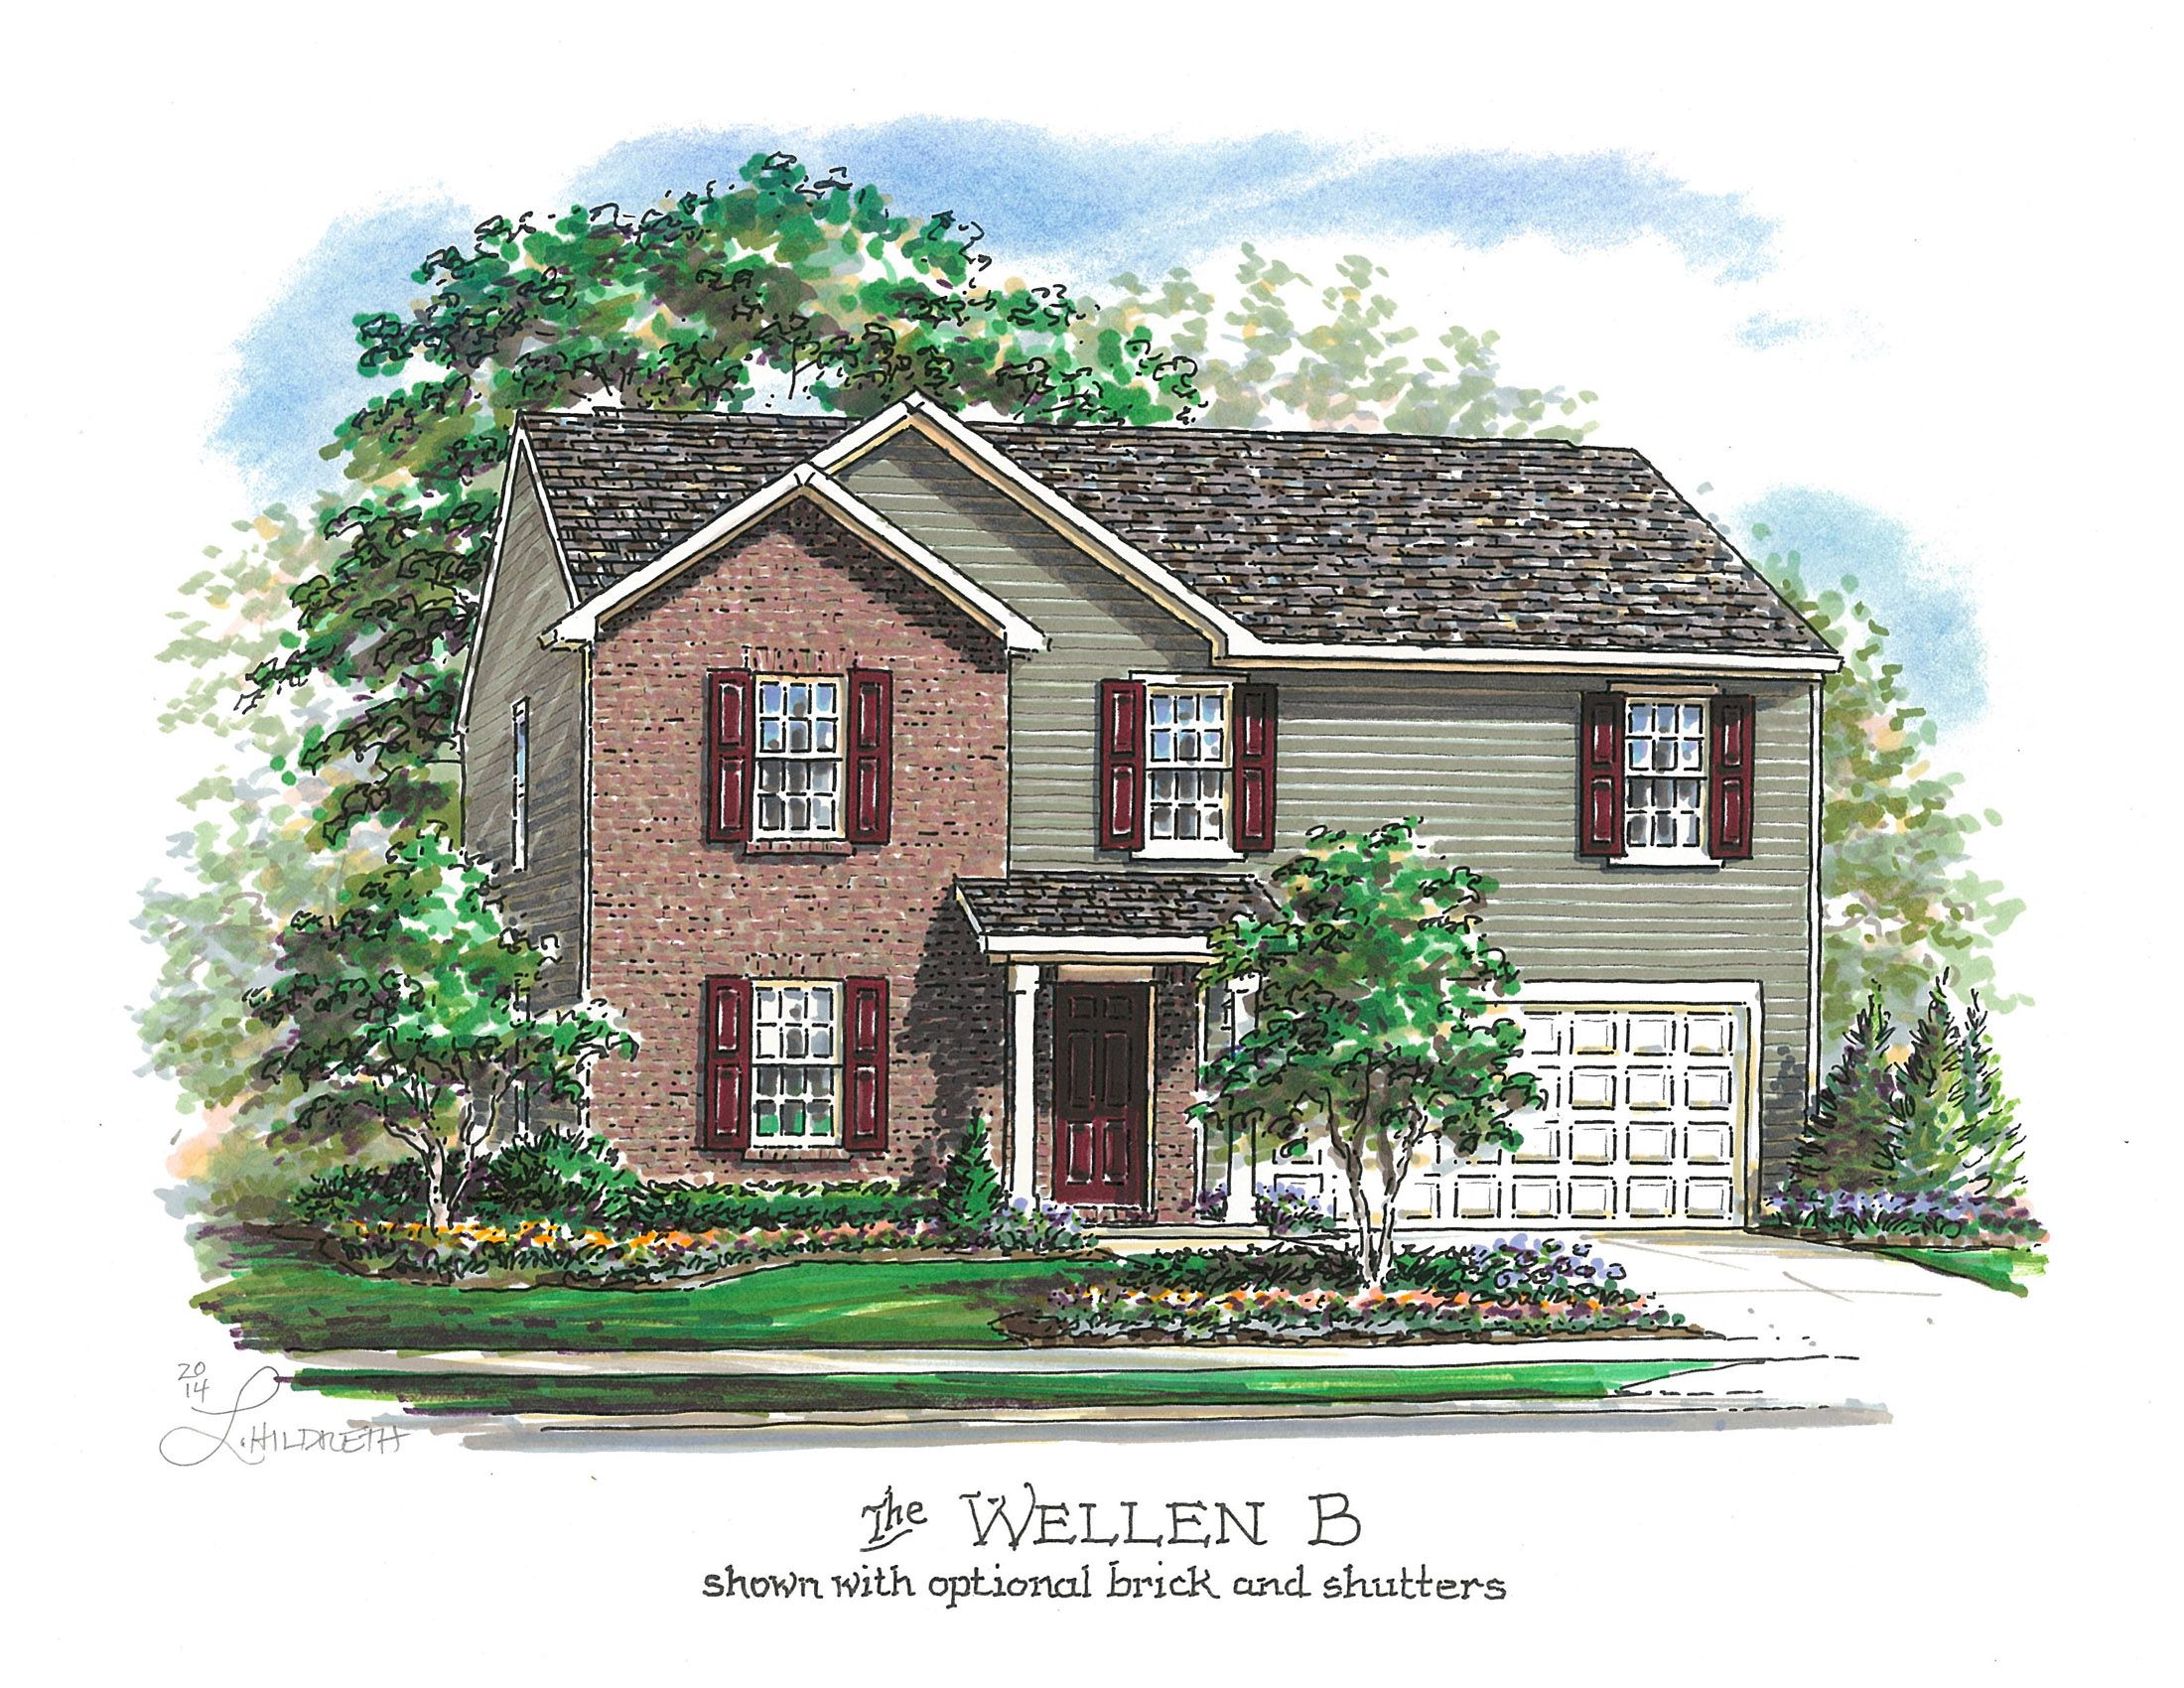 Wellen B shown with optional brick and shutters House